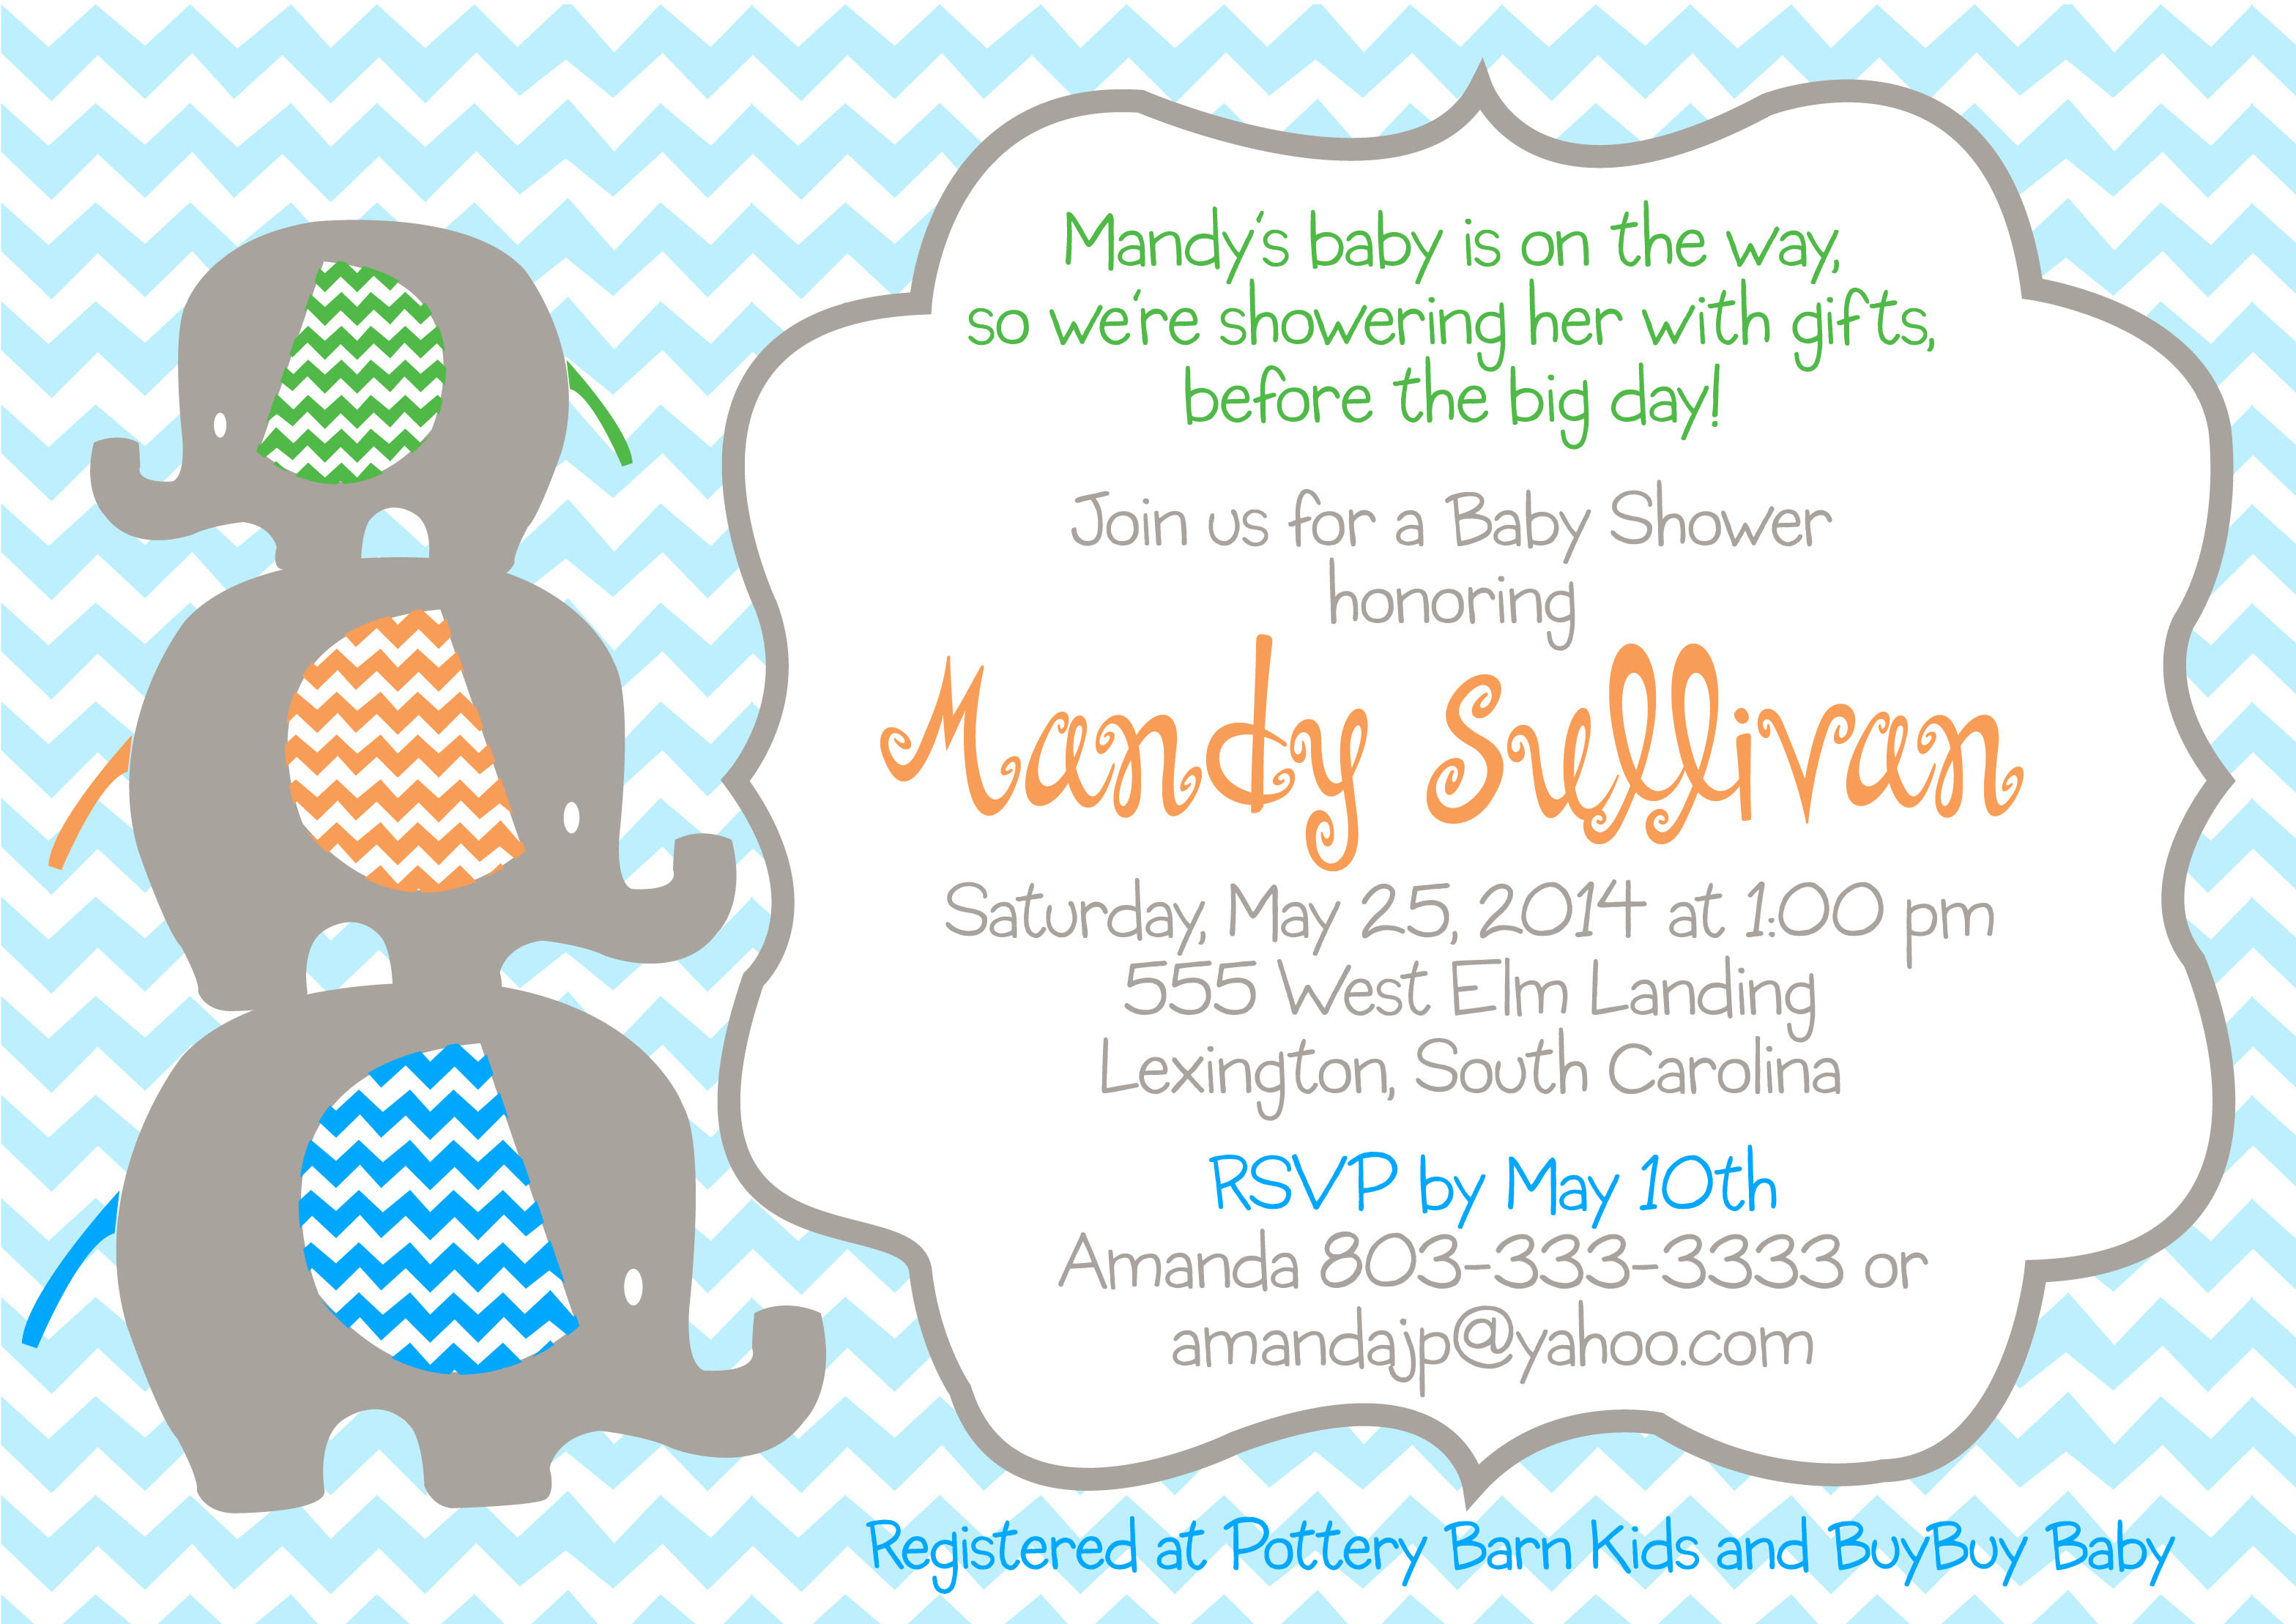 023 Baby Shower Invitation Templates Invite Template Free - Free Baby Shower Invitation Maker Online Printable